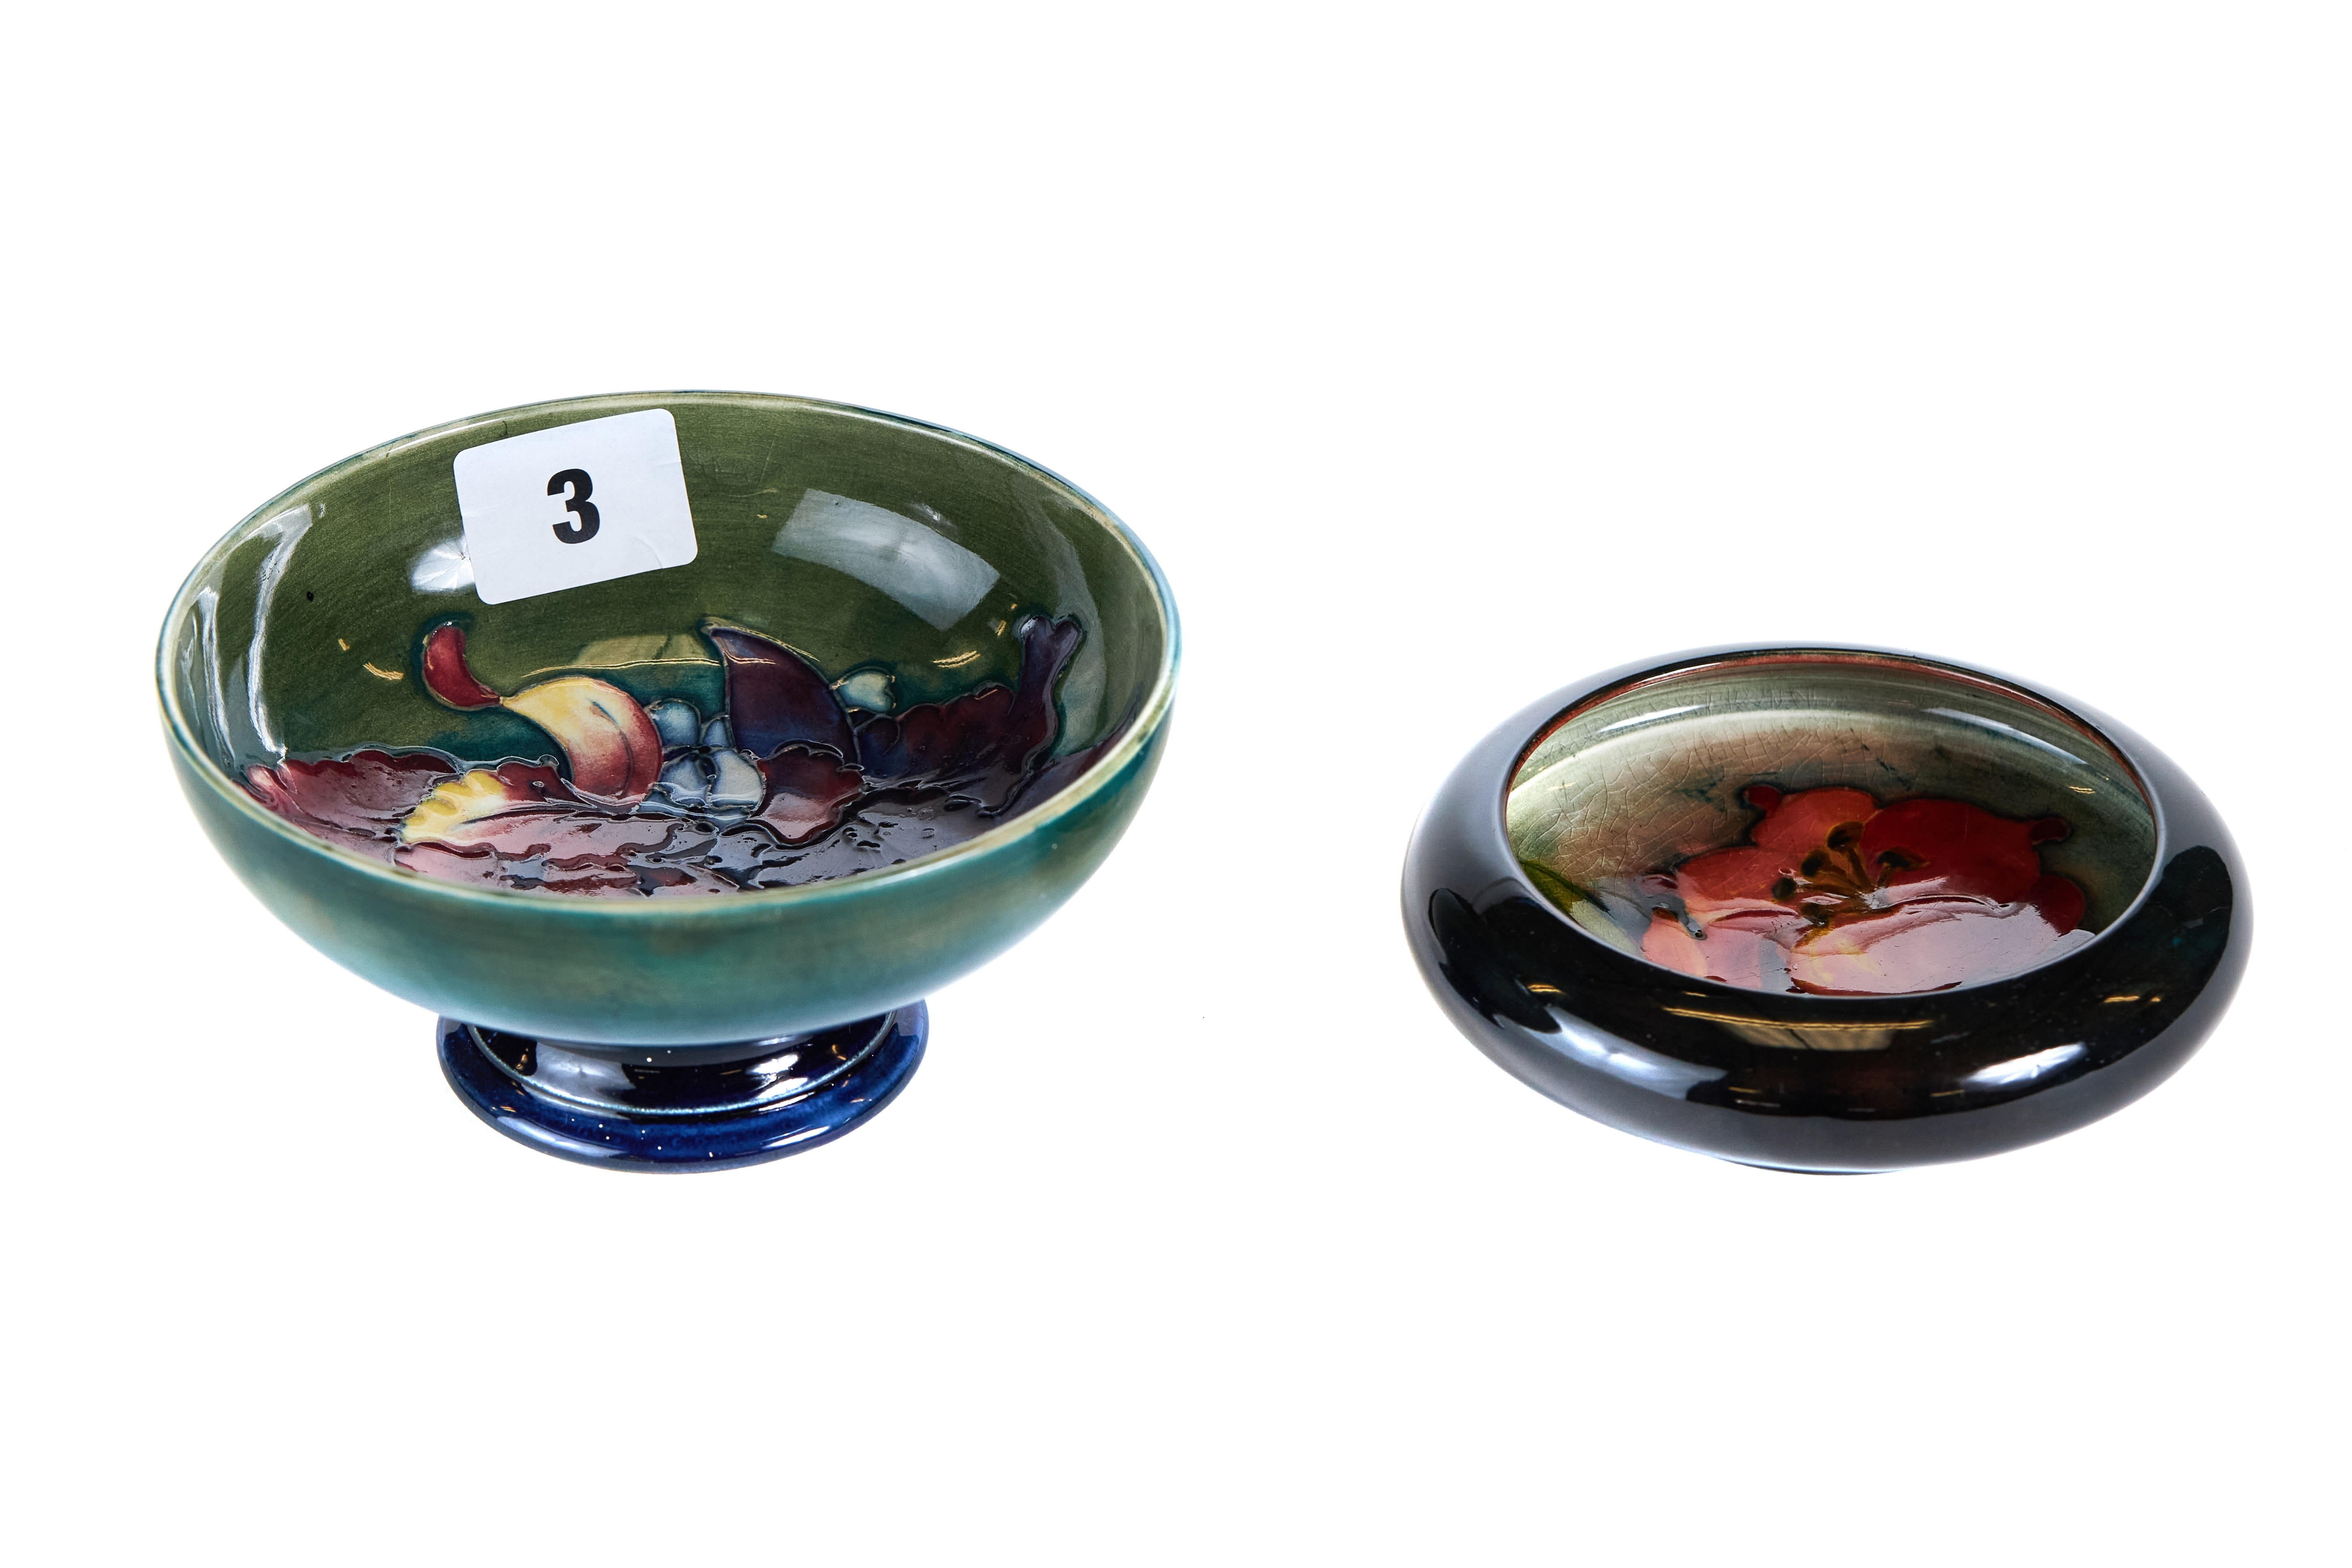 A 20TH CENTURY MOORCROFT POTTERY GREEN GLAZED PEDESTAL BOWL internally decorated with flowers,